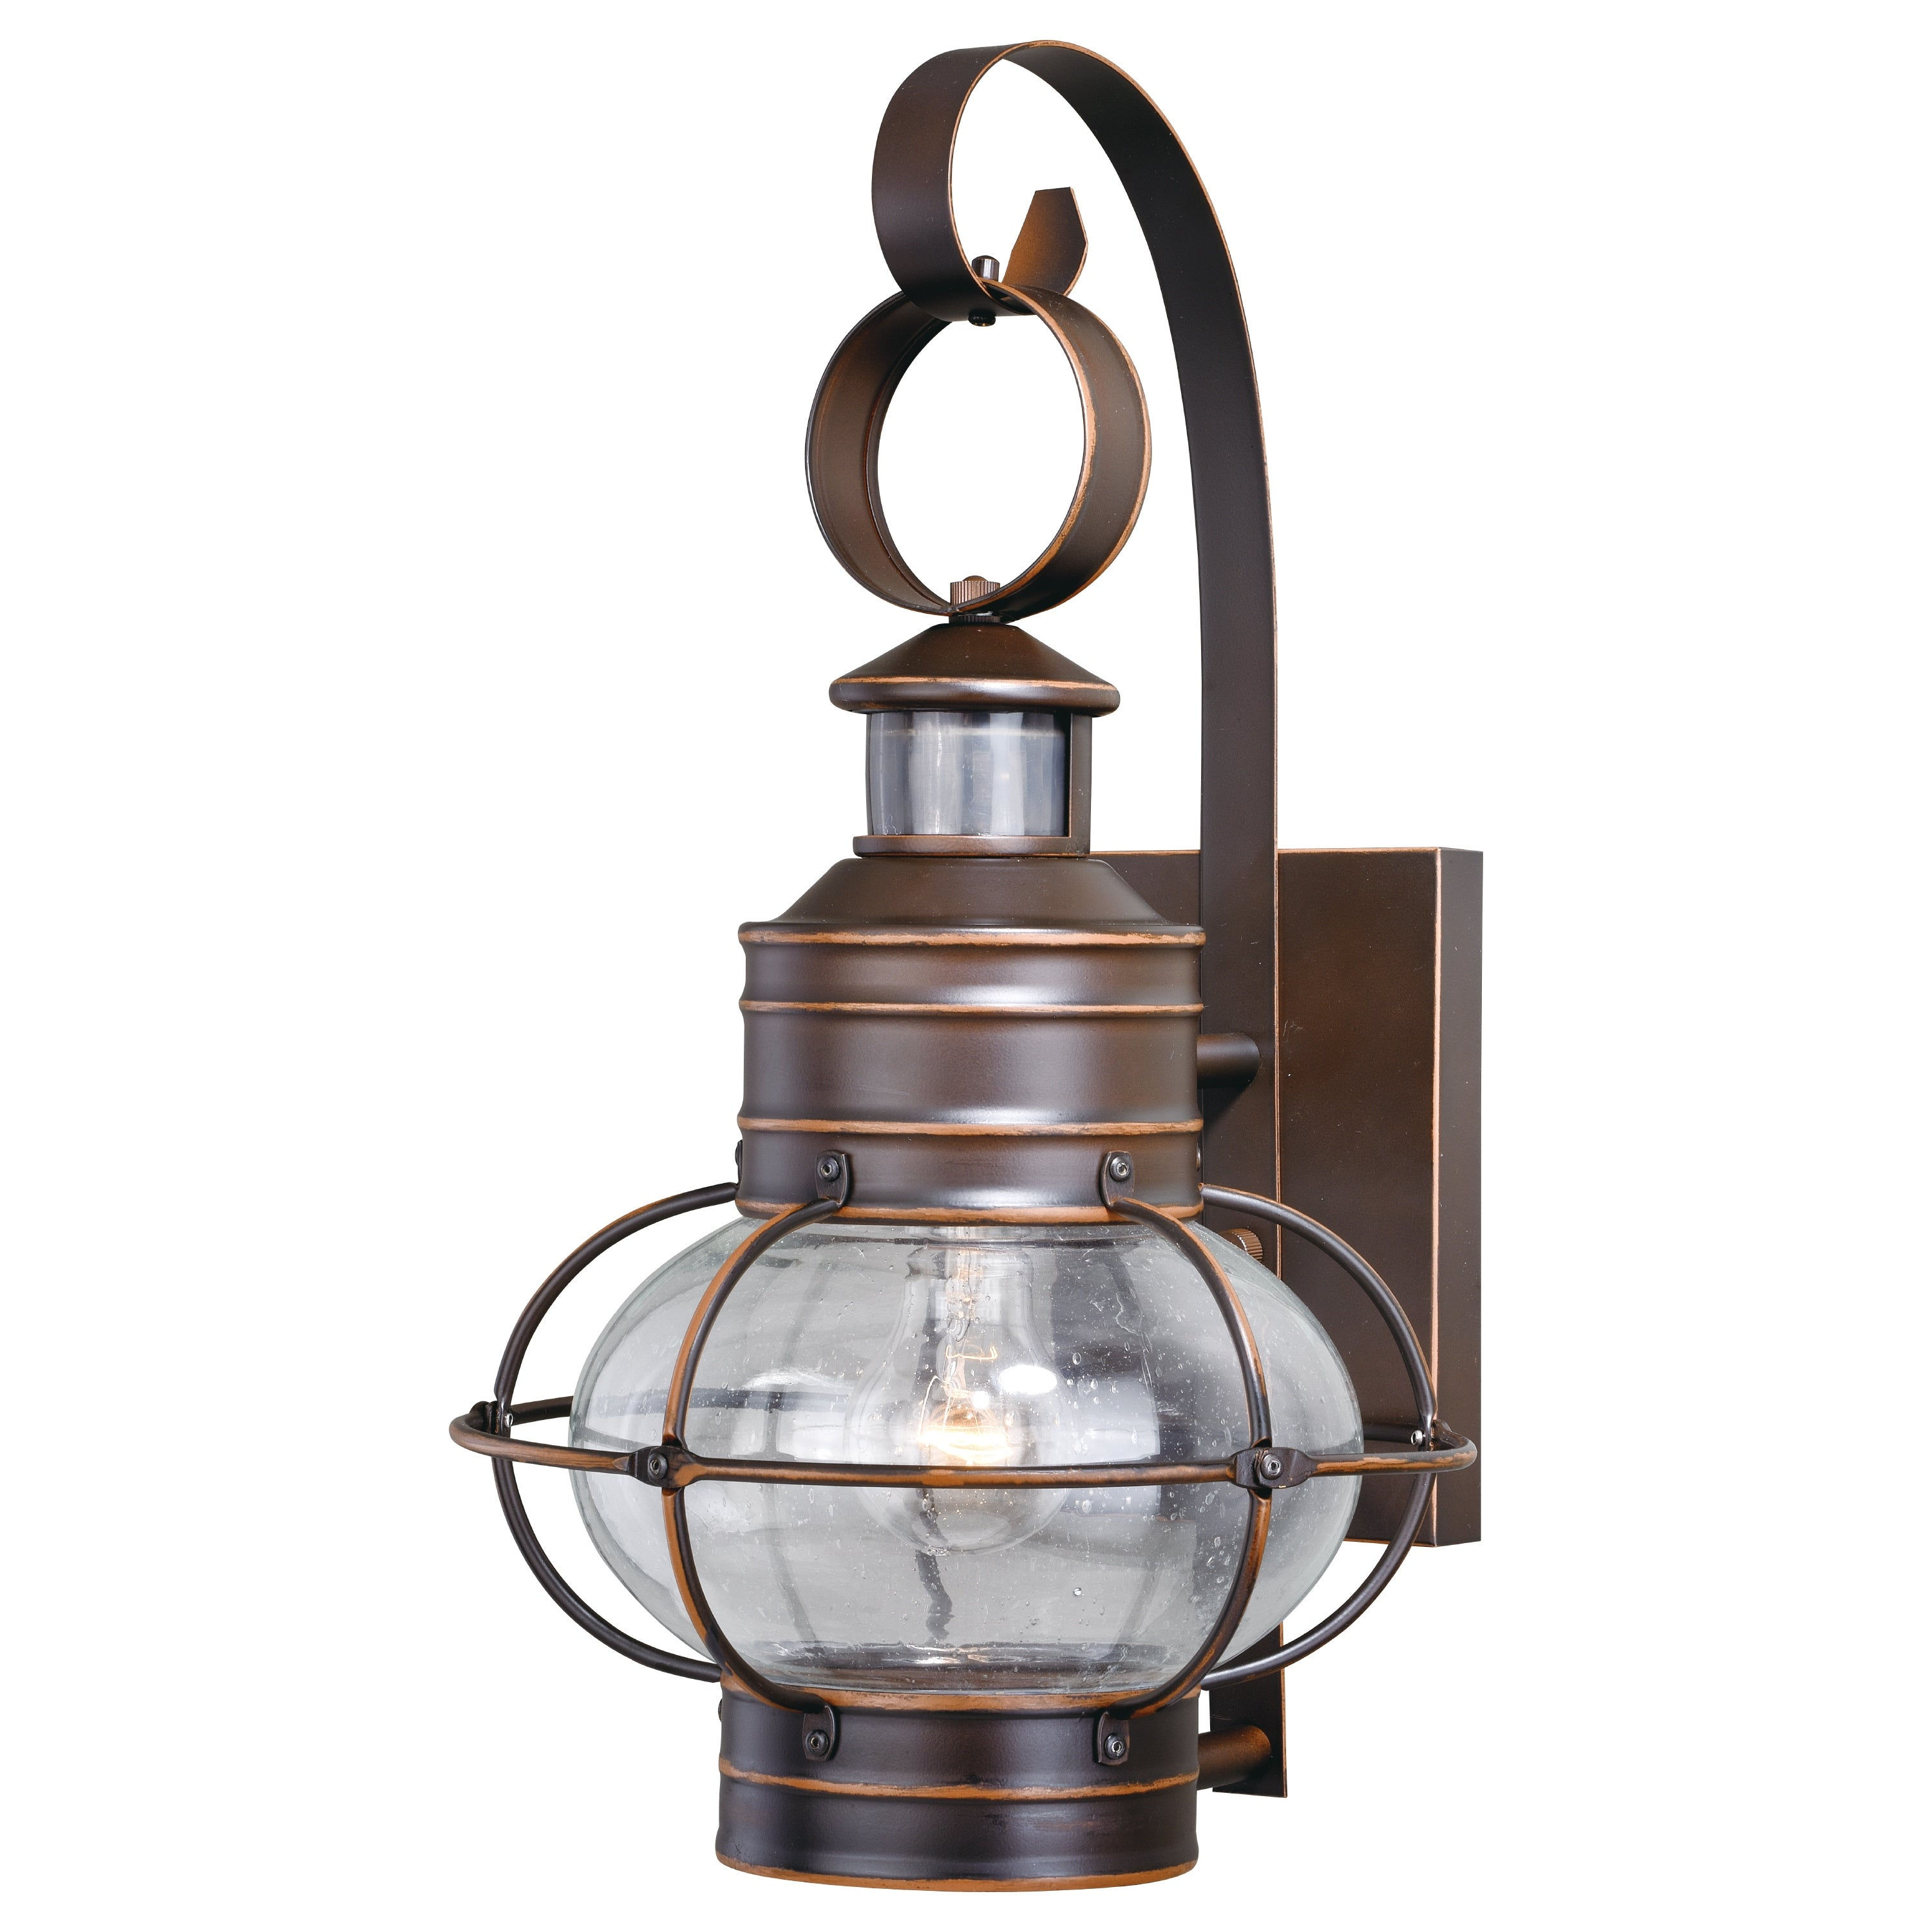 Image of: Shop Black Friday Deals On Chatham Bronze Motion Sensor Dusk To Dawn Coastal Outdoor Wall Light 9 75 In W X 17 5 In H X 11 In D Overstock 20877039